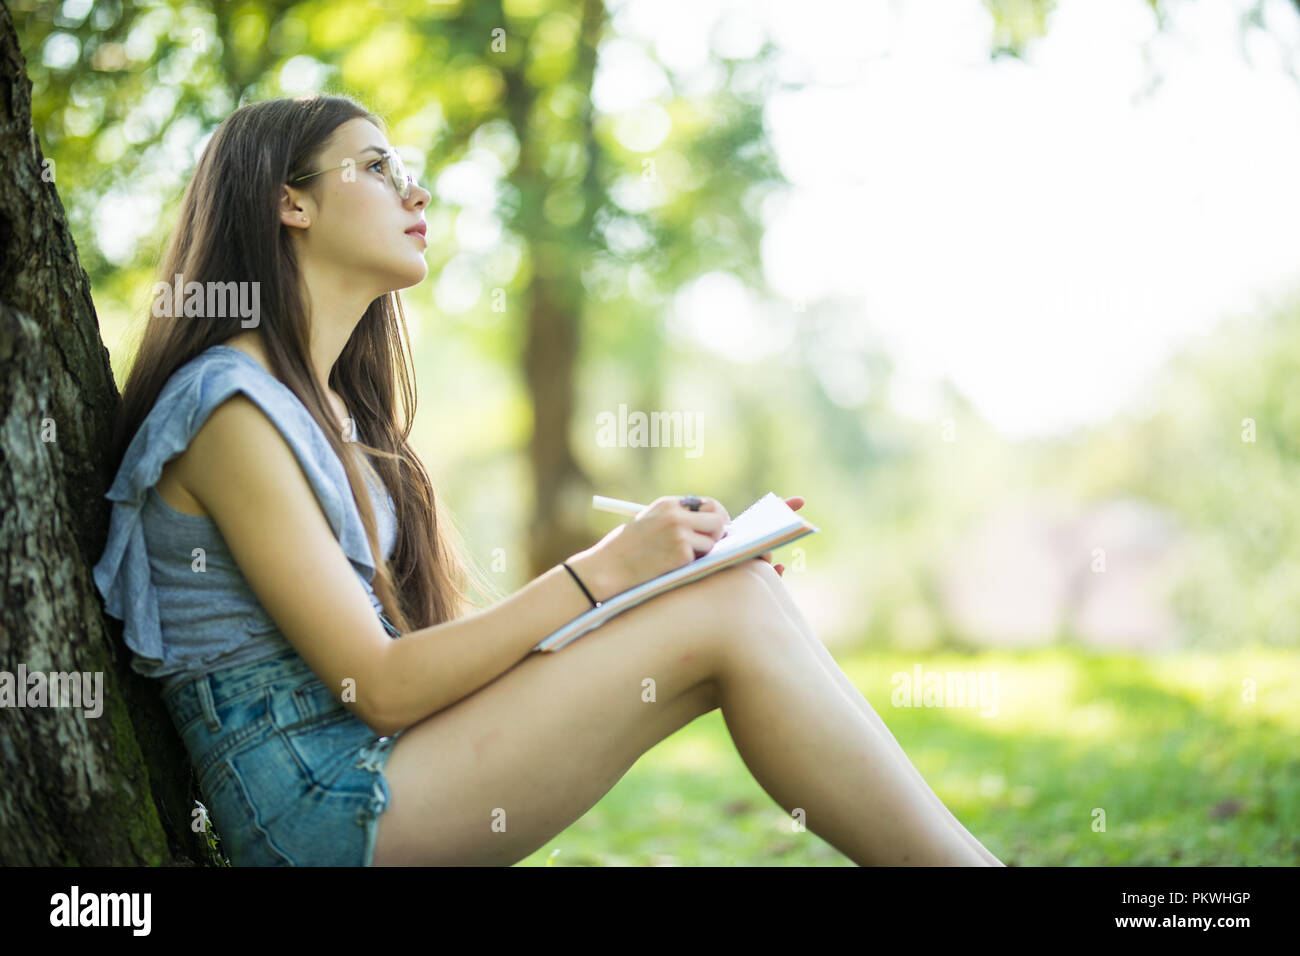 Female student taking notes in her notebook. Young smiling woman sitting in the park doing assignments. - Stock Image